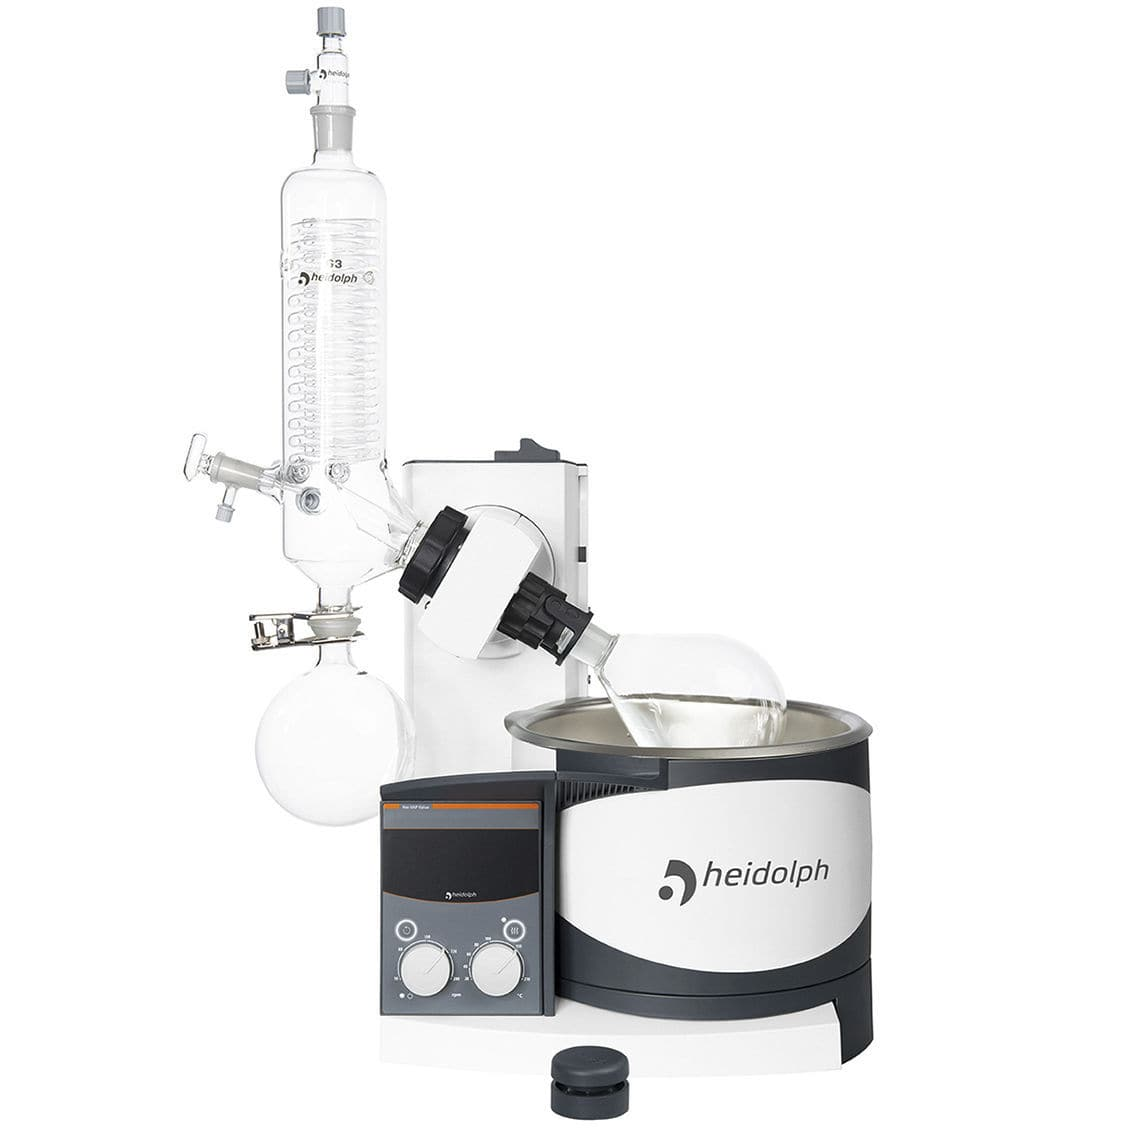 Hei-VAP Value Analogue Rotary Evaporator, Heidolph